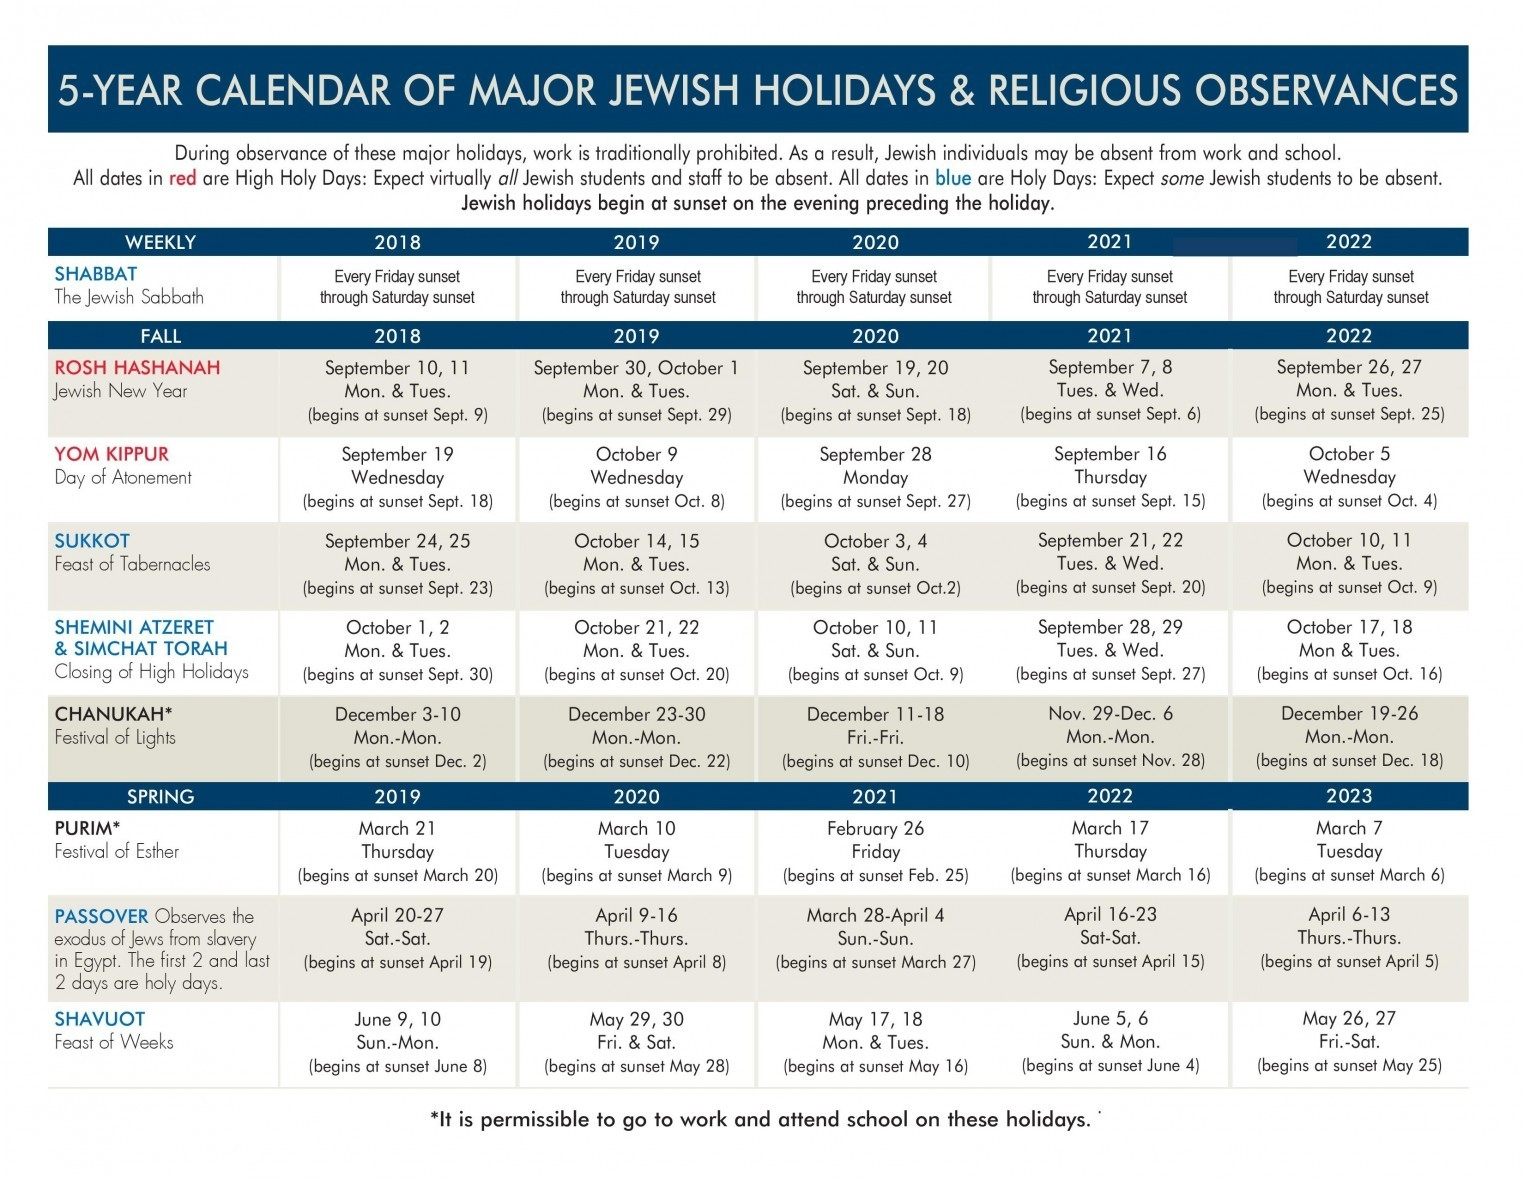 5-Year Jewish Holiday Calendar | Jewish Federation Of-Dates For The Jewish Holidays In October